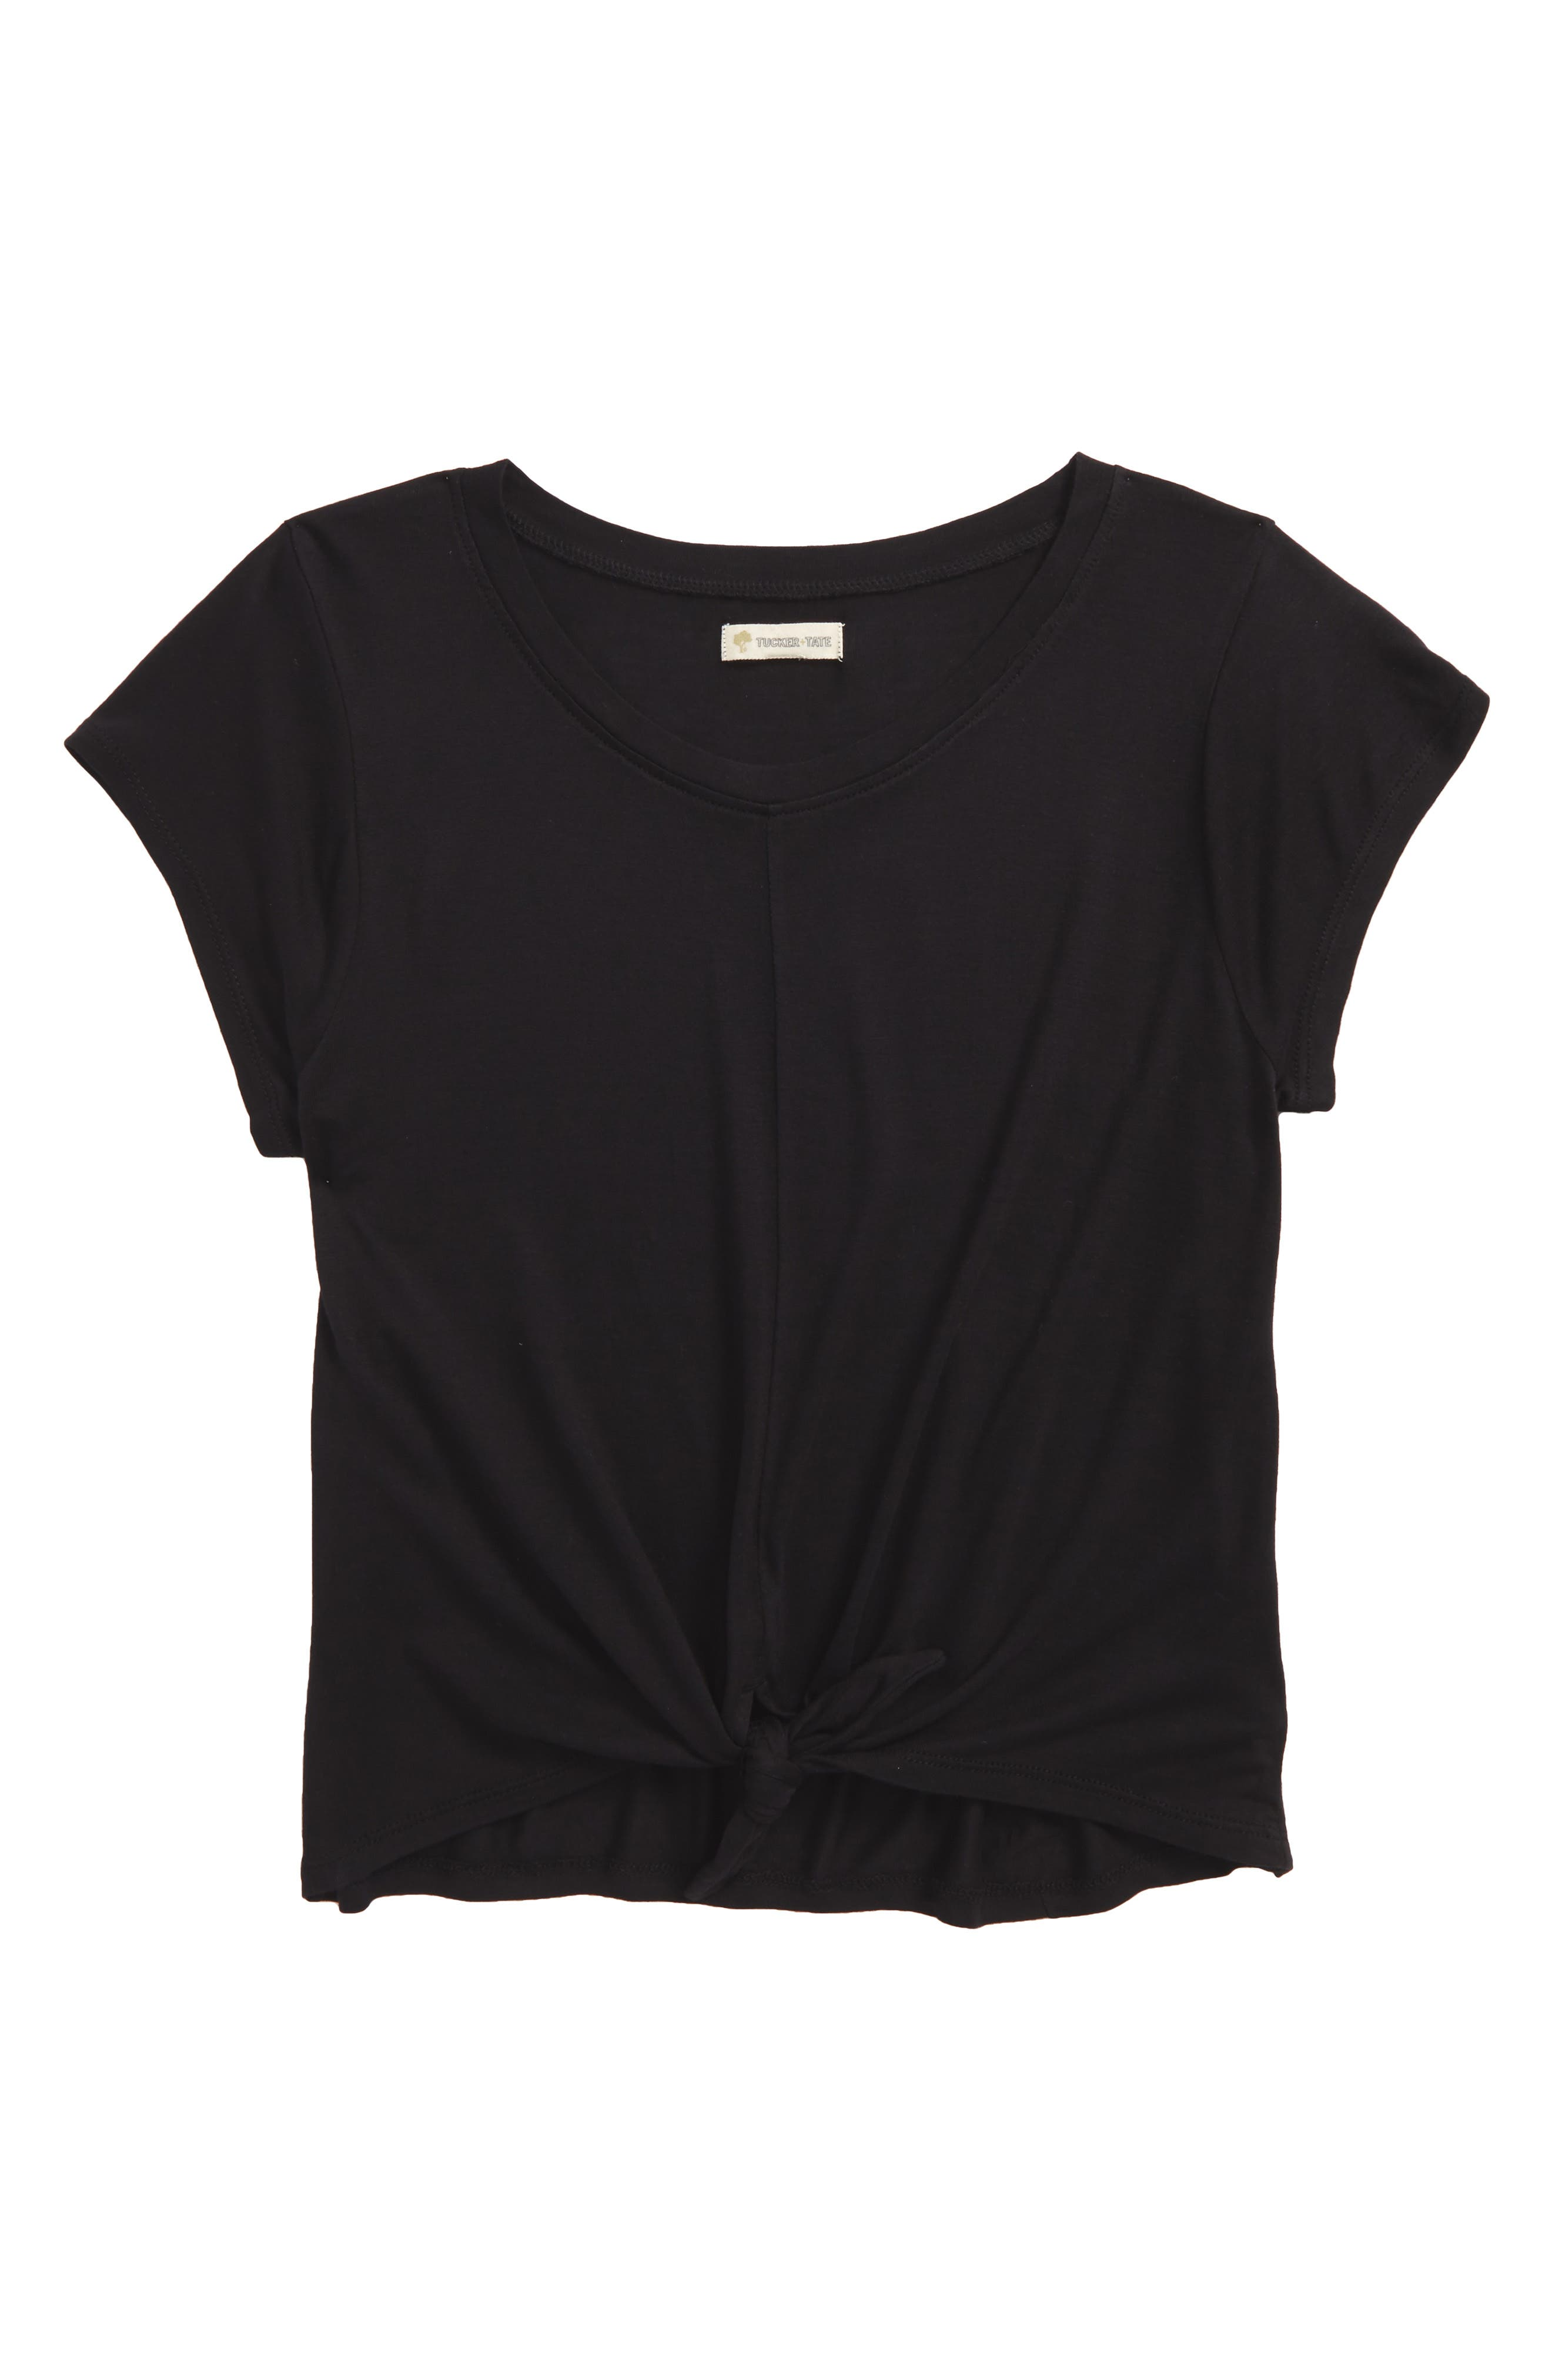 Knot Tee,                         Main,                         color, 001